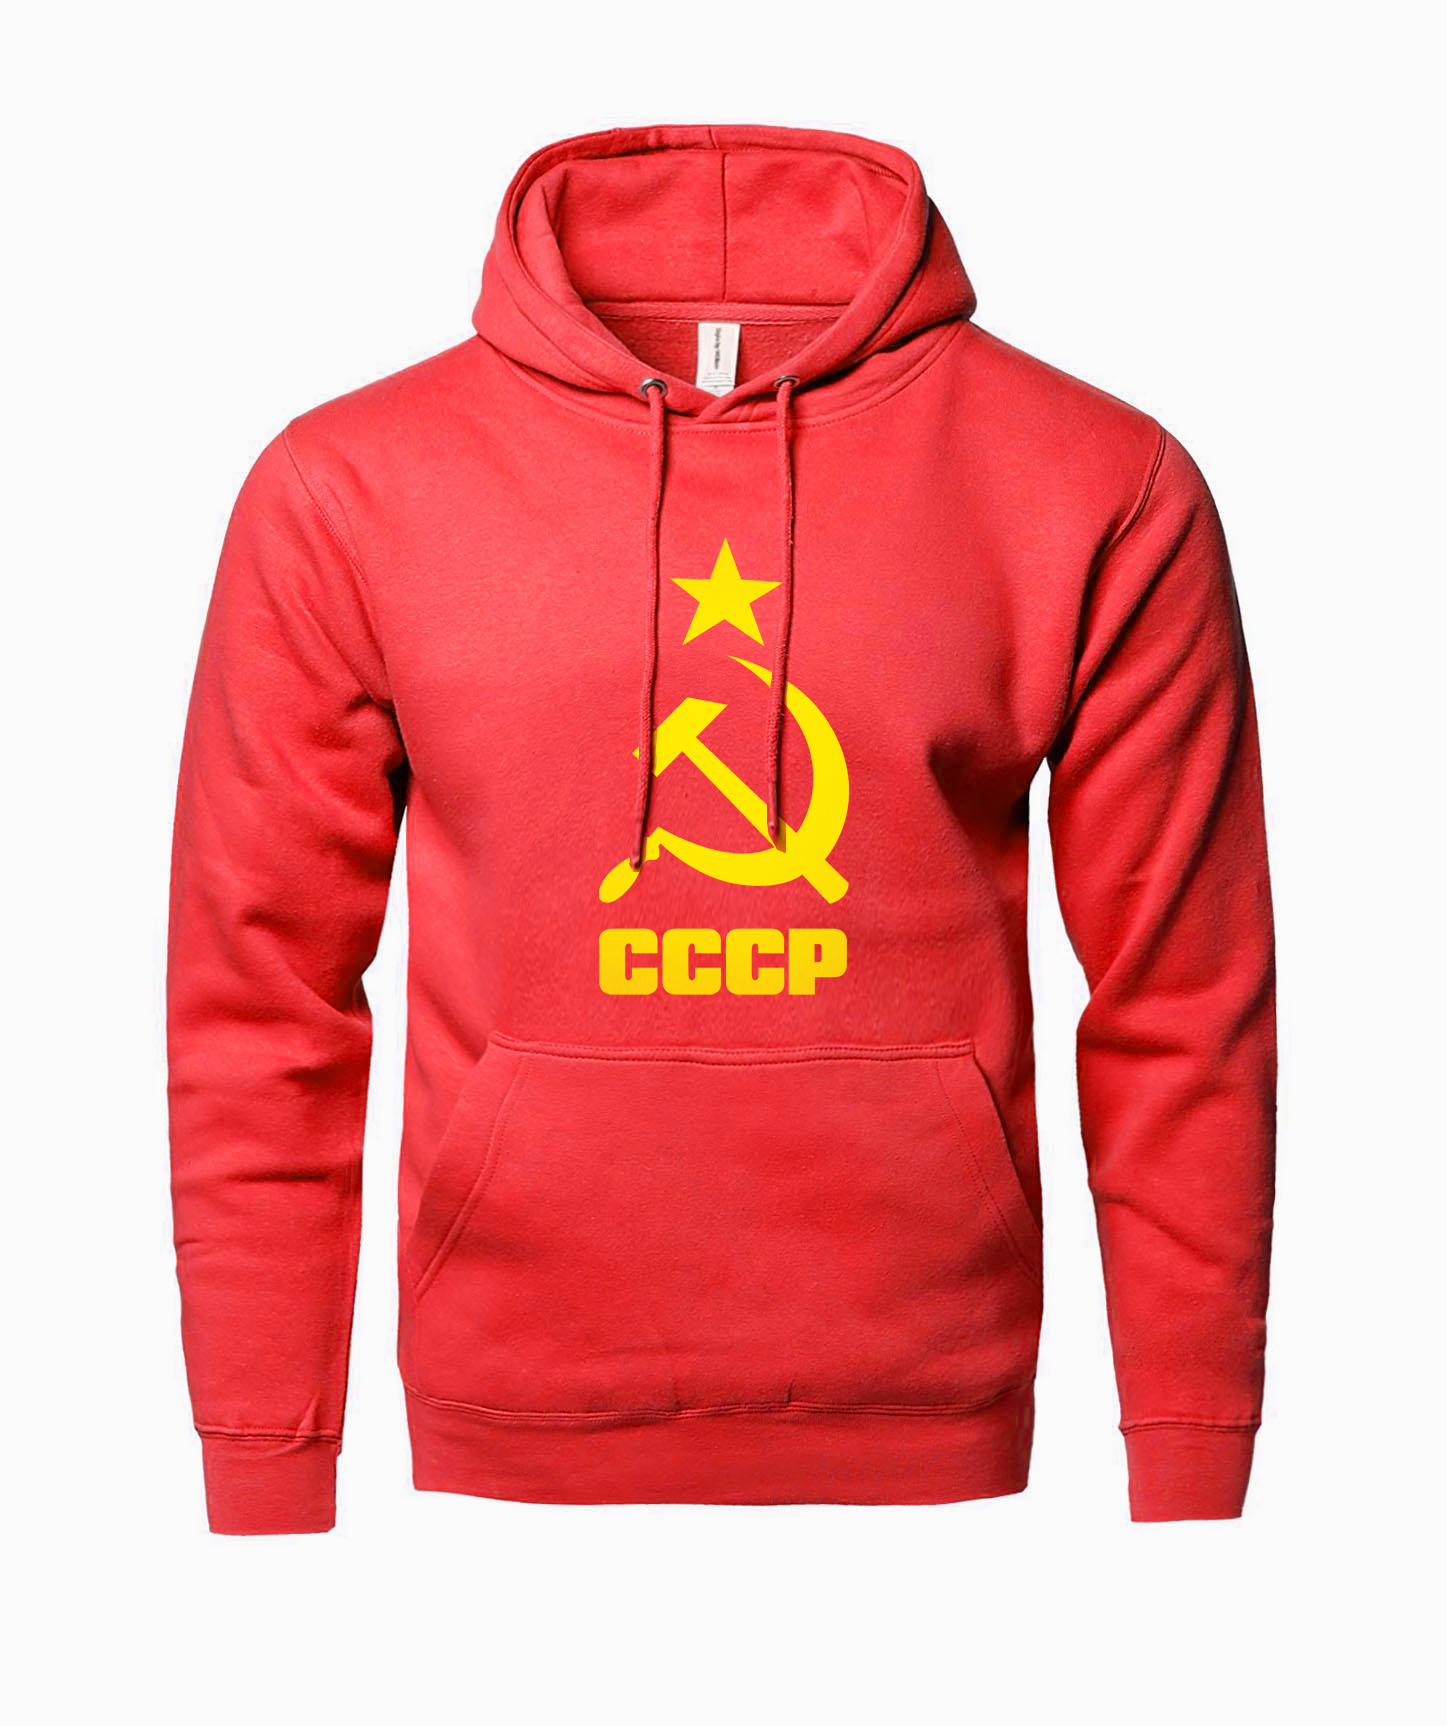 2019 Fashion Fleece Hoodie Men Sweatshirt Print Hot Hoody Men USSR Soviet Union KGB Streetwear Hip Hop Sportsman Wear